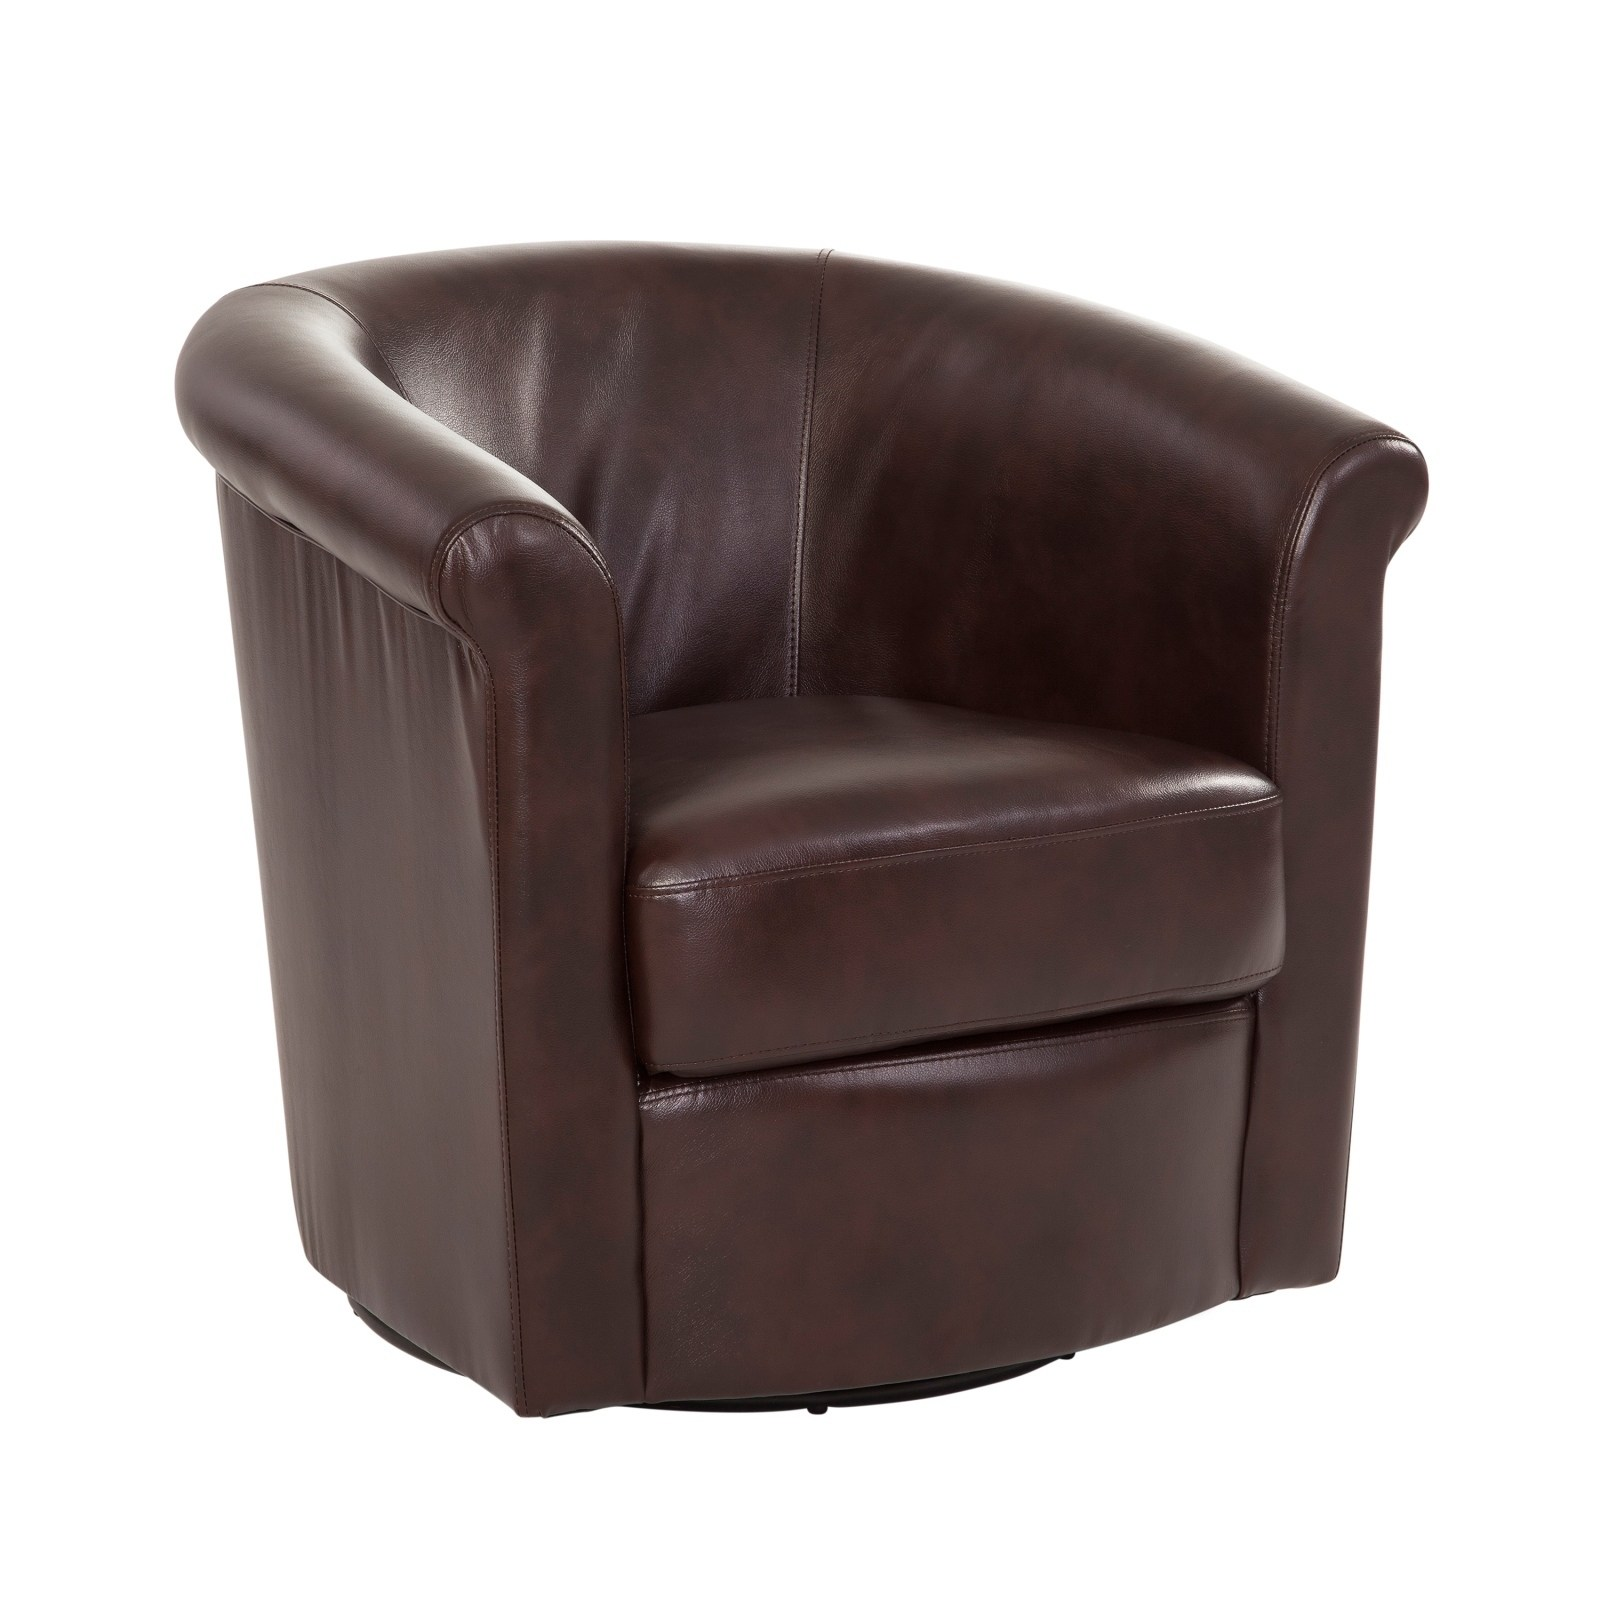 Swivel Tub Chair Addison Swivel Tub Chair Brown